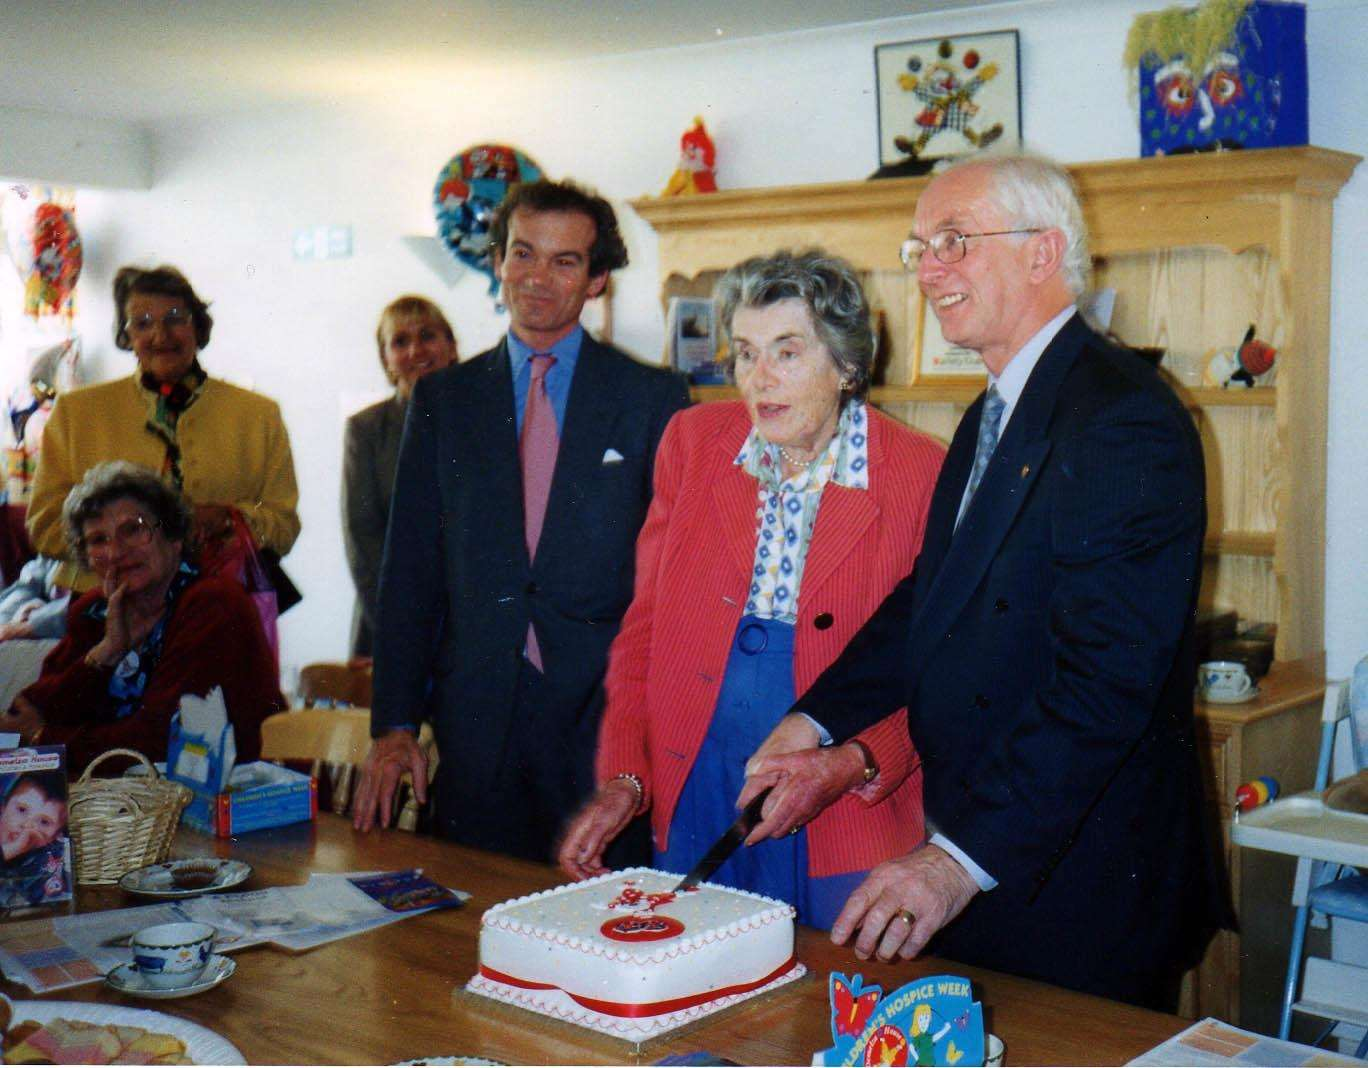 From left, Demelza vice president Richard Oldfield, the late Patricia Knatchbull, 2nd Countess Mountbatten of Burma, and Demelza's father Derek Phillips